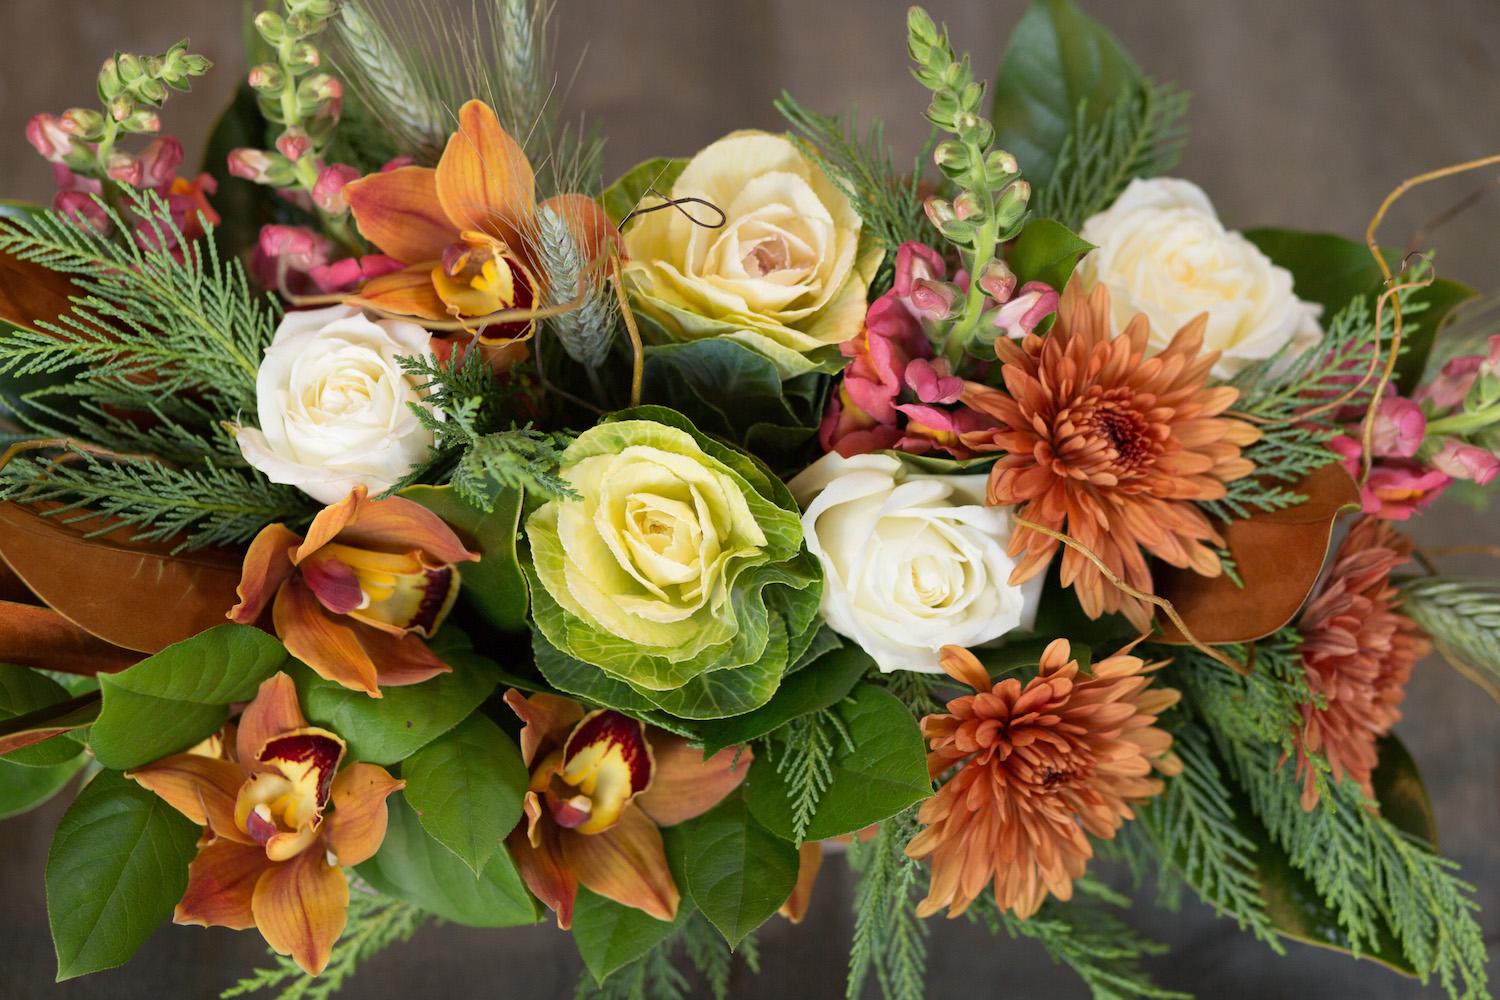 Some varieties that we may choose to work with included Snapdragons and Ornamental Kale.